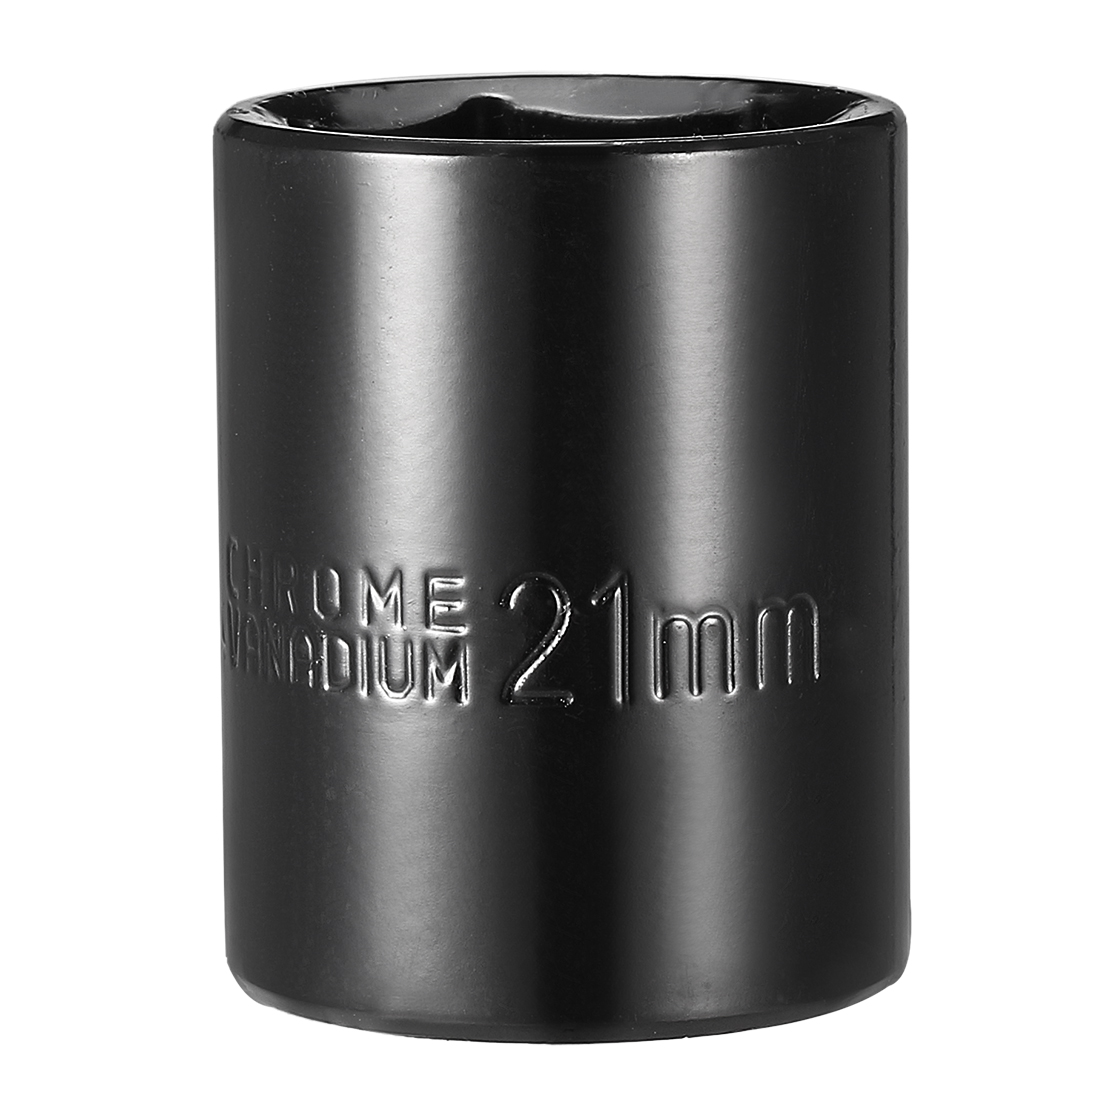 1/2-inch Drive 21mm 6-Point Shallow Impact Socket, Cr-V Steel